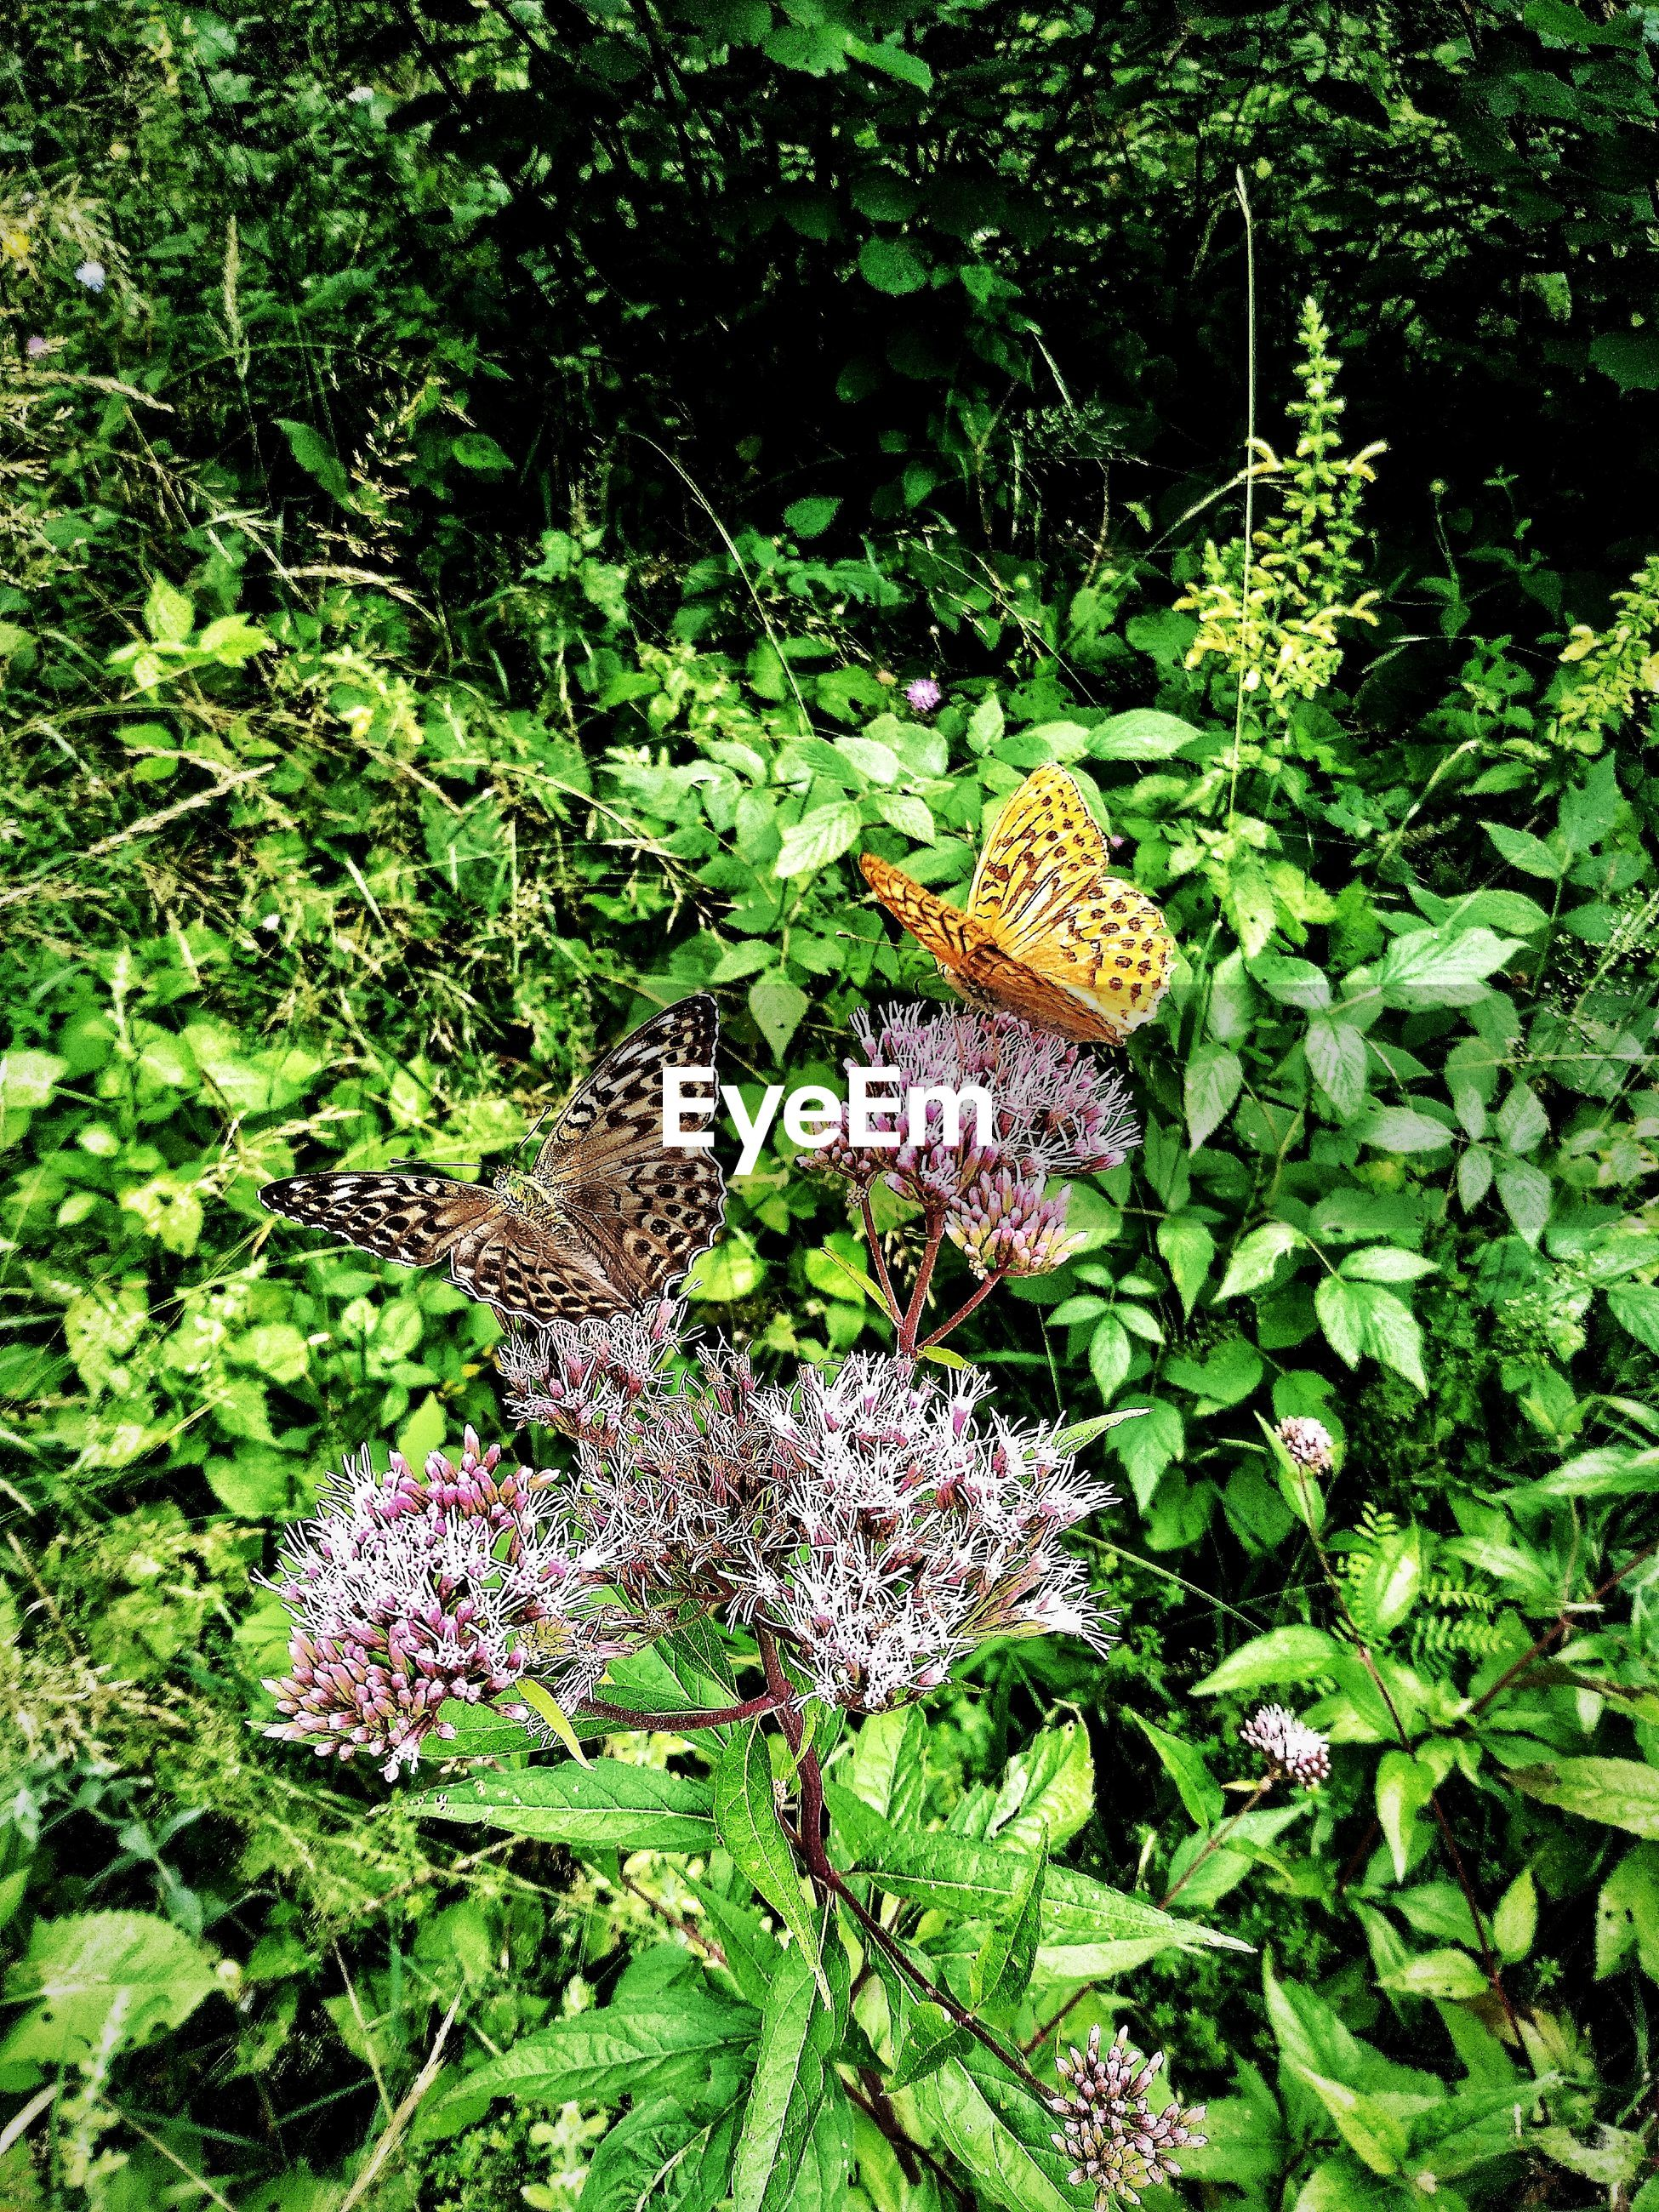 HIGH ANGLE VIEW OF BUTTERFLY ON PURPLE FLOWERS